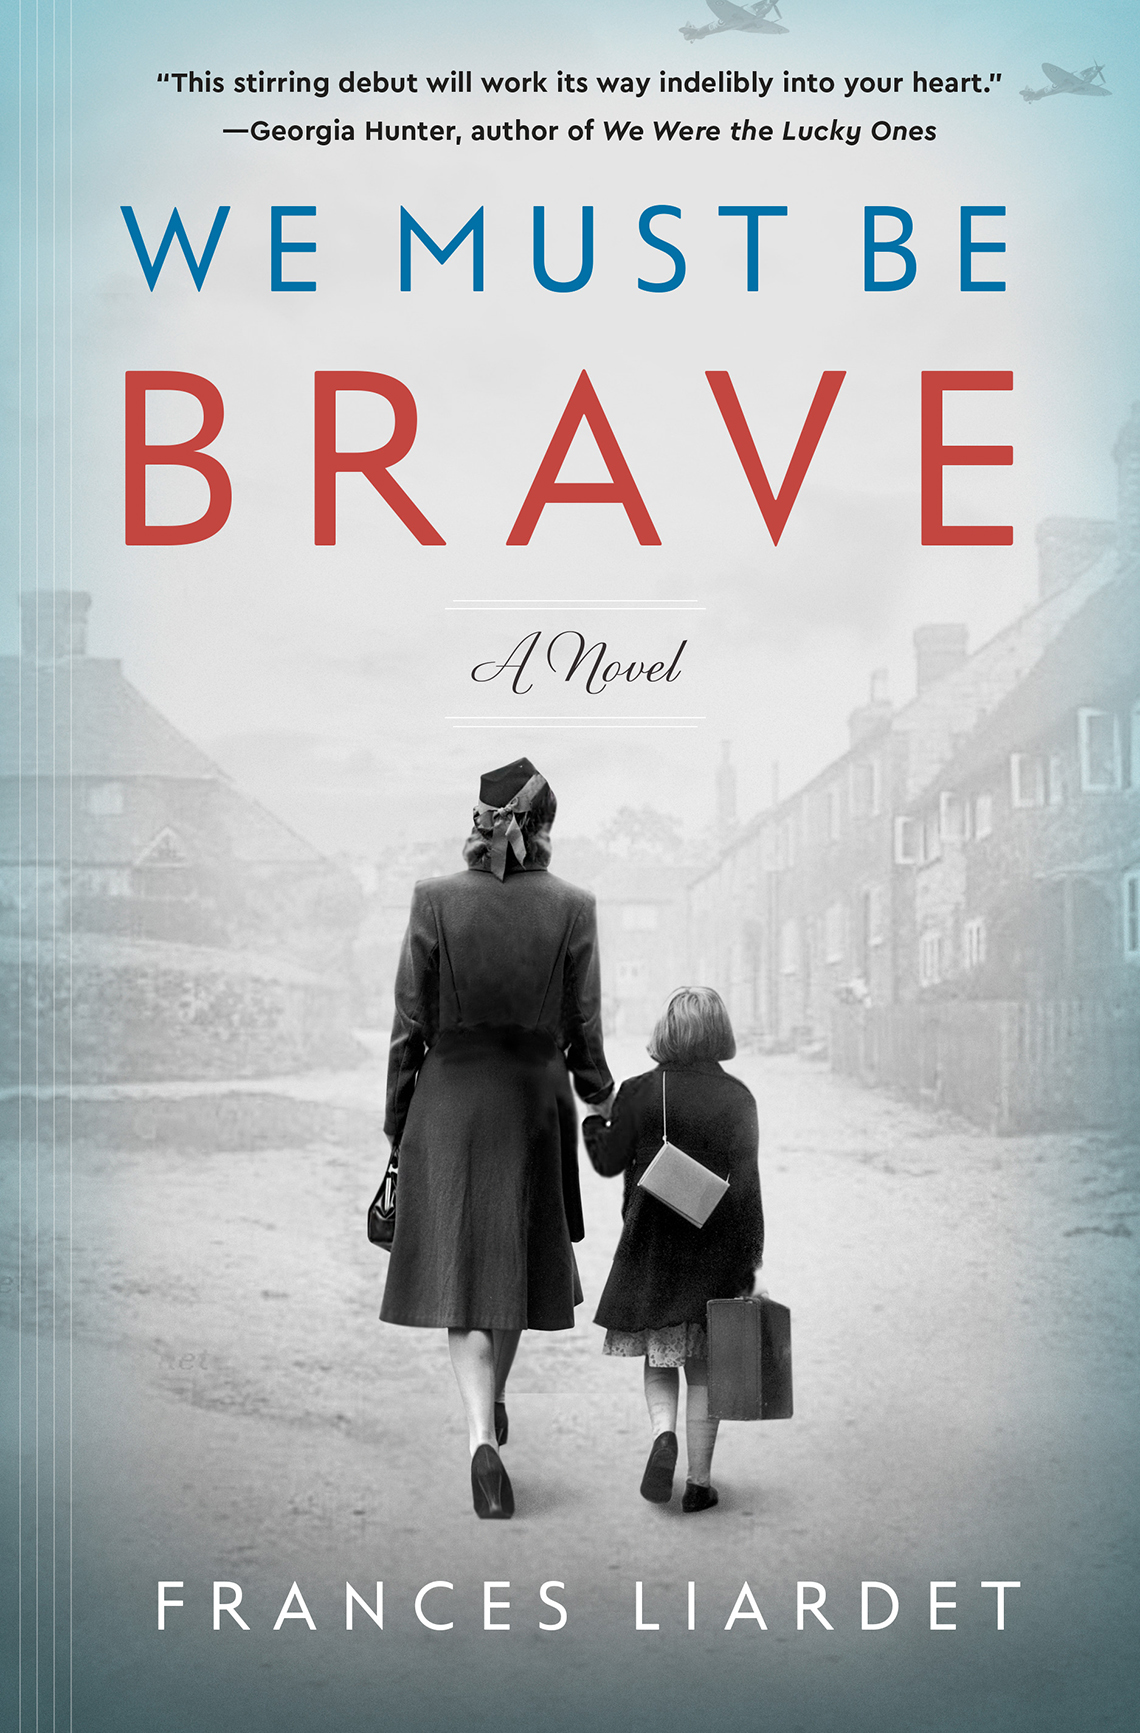 Book cover reads: We Must Be Brave, Frances Liardet